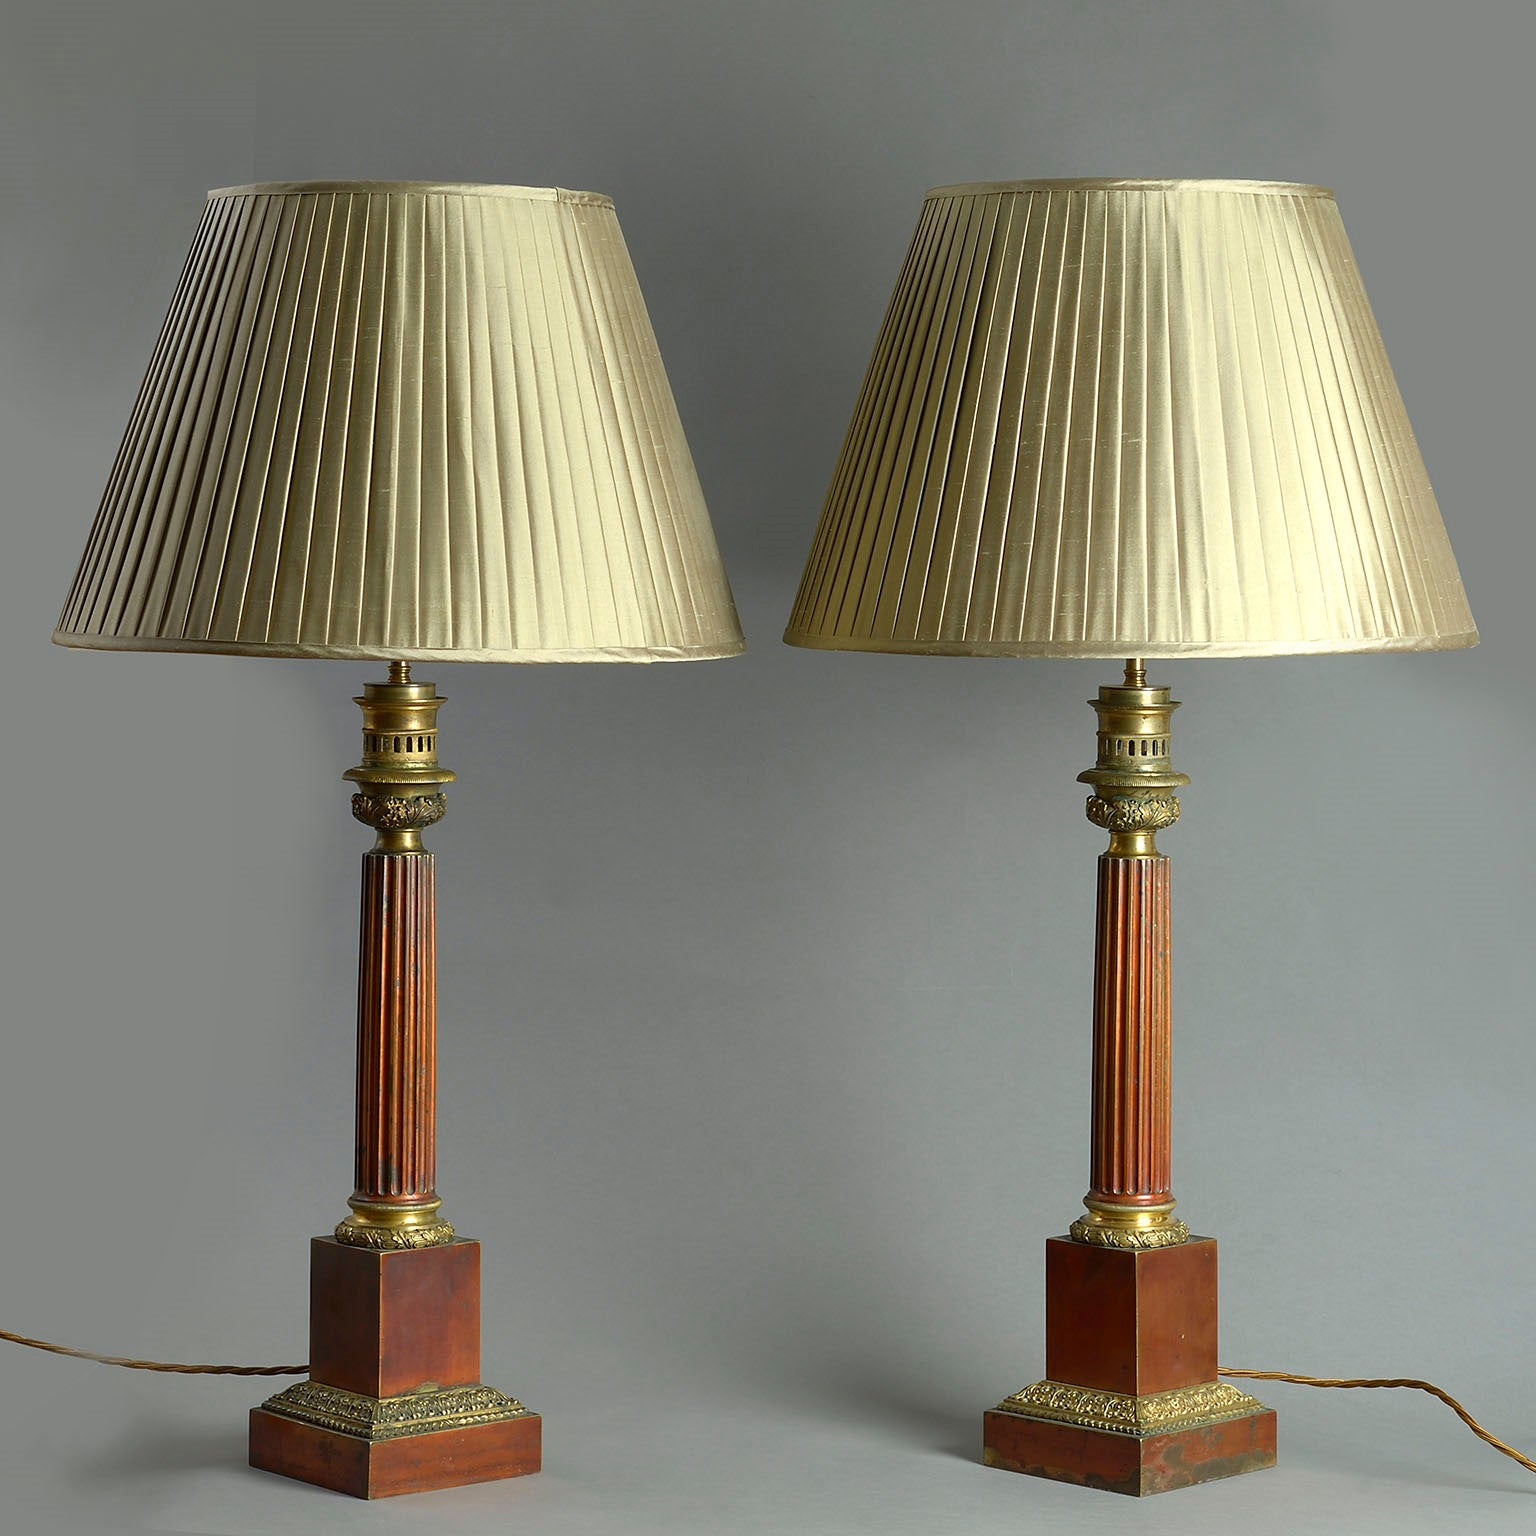 Pair of Red Lacquer Fluted Column Lamps